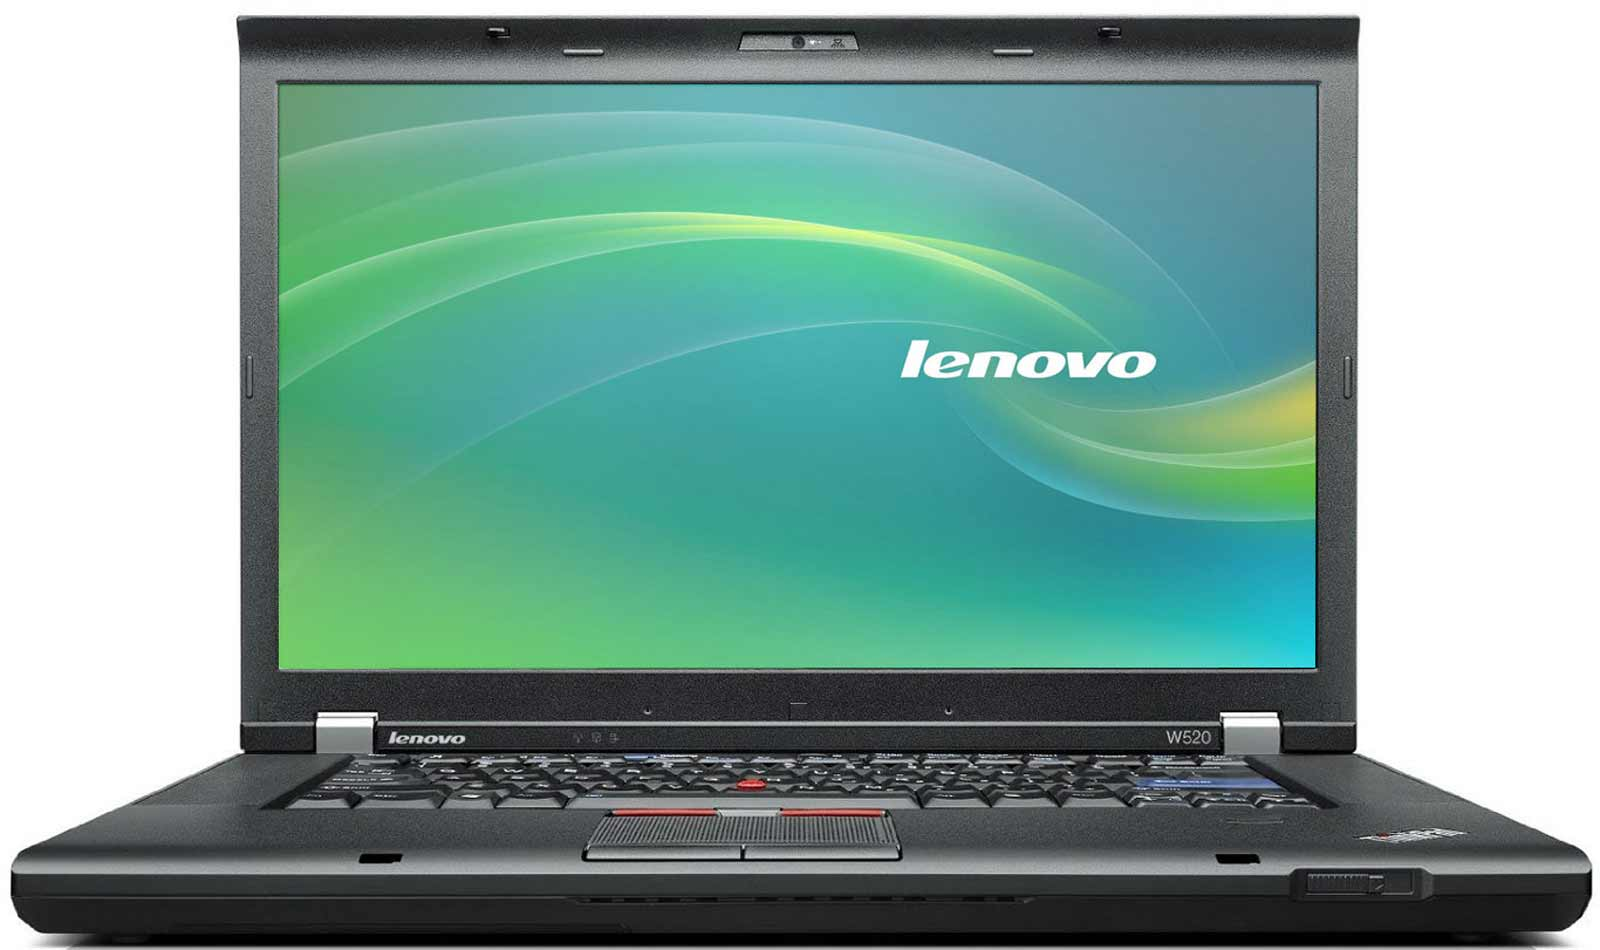 Lenovo ThinkPad W520 Best Mobile Workstation